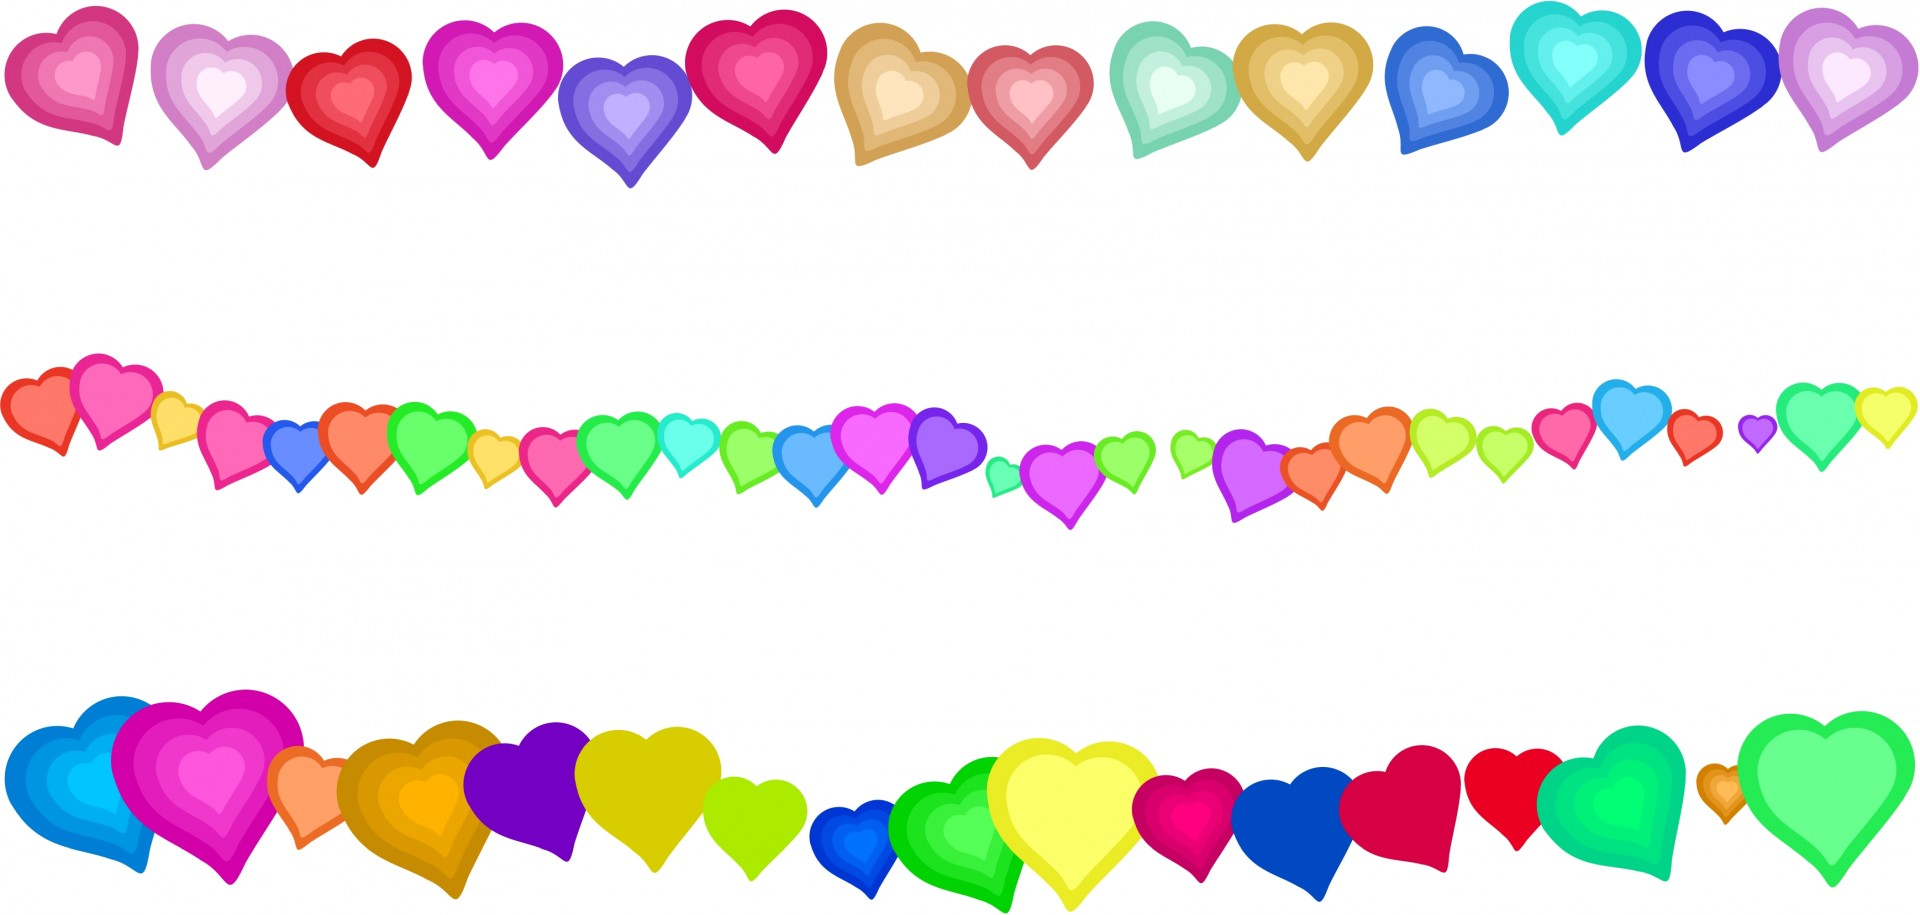 1920x915 Heart Border Edges Free Stock Photo